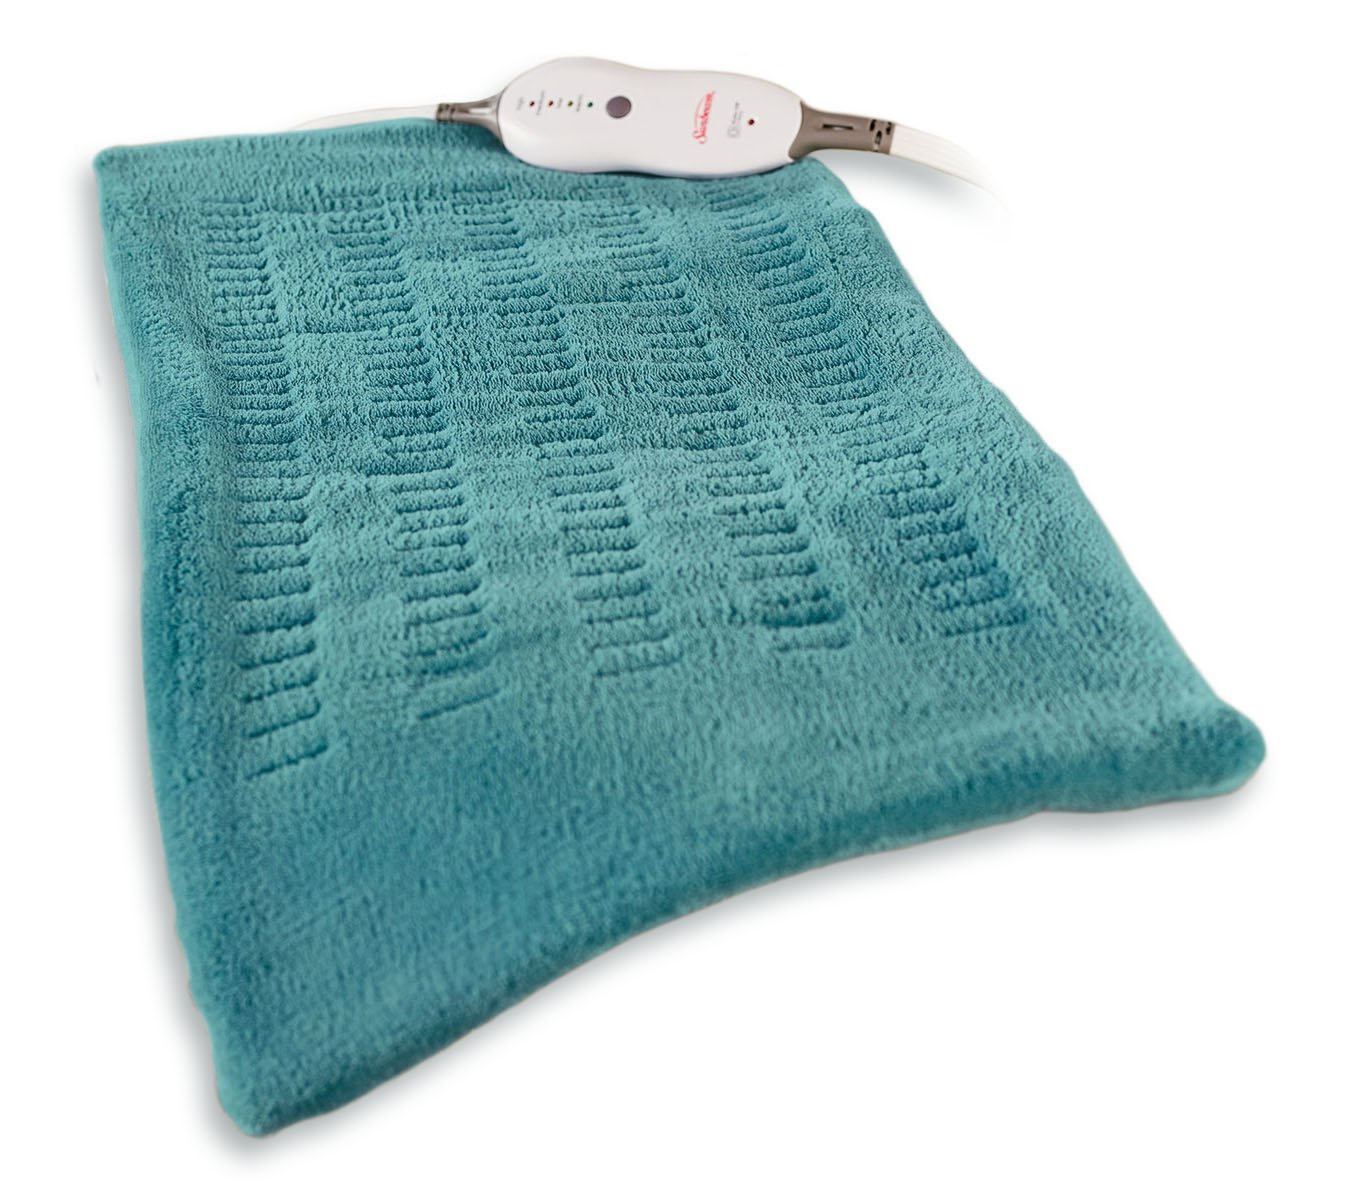 Sunbeam King-Size Microplush/SoftTouch Heating Pad,  4 Temperature Settings with Digital LED Controller, 2-Hour Auto Shut-Off, Machine Washable, 12'' x 24''